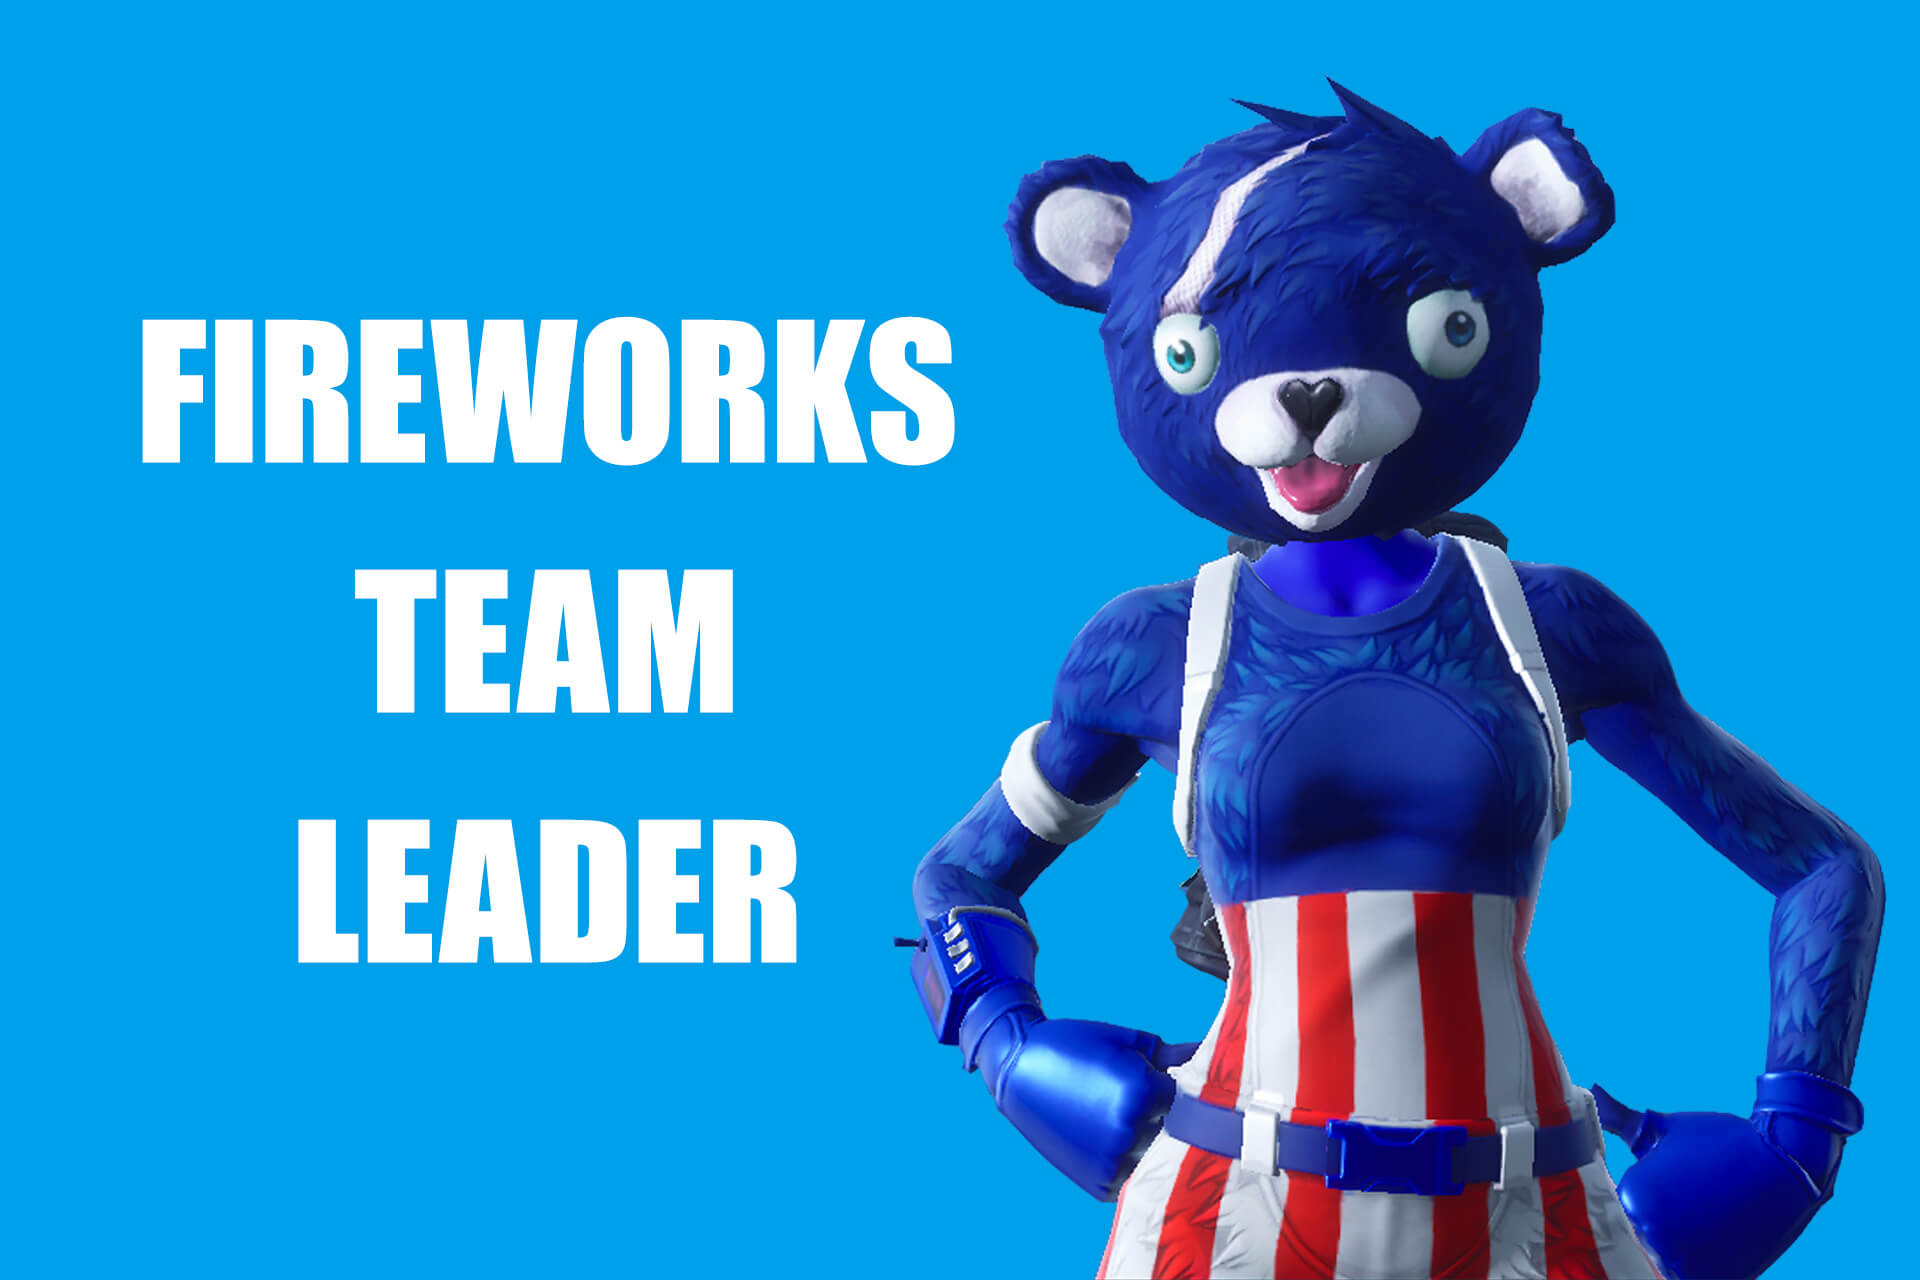 costume-fireworks-team-leader1